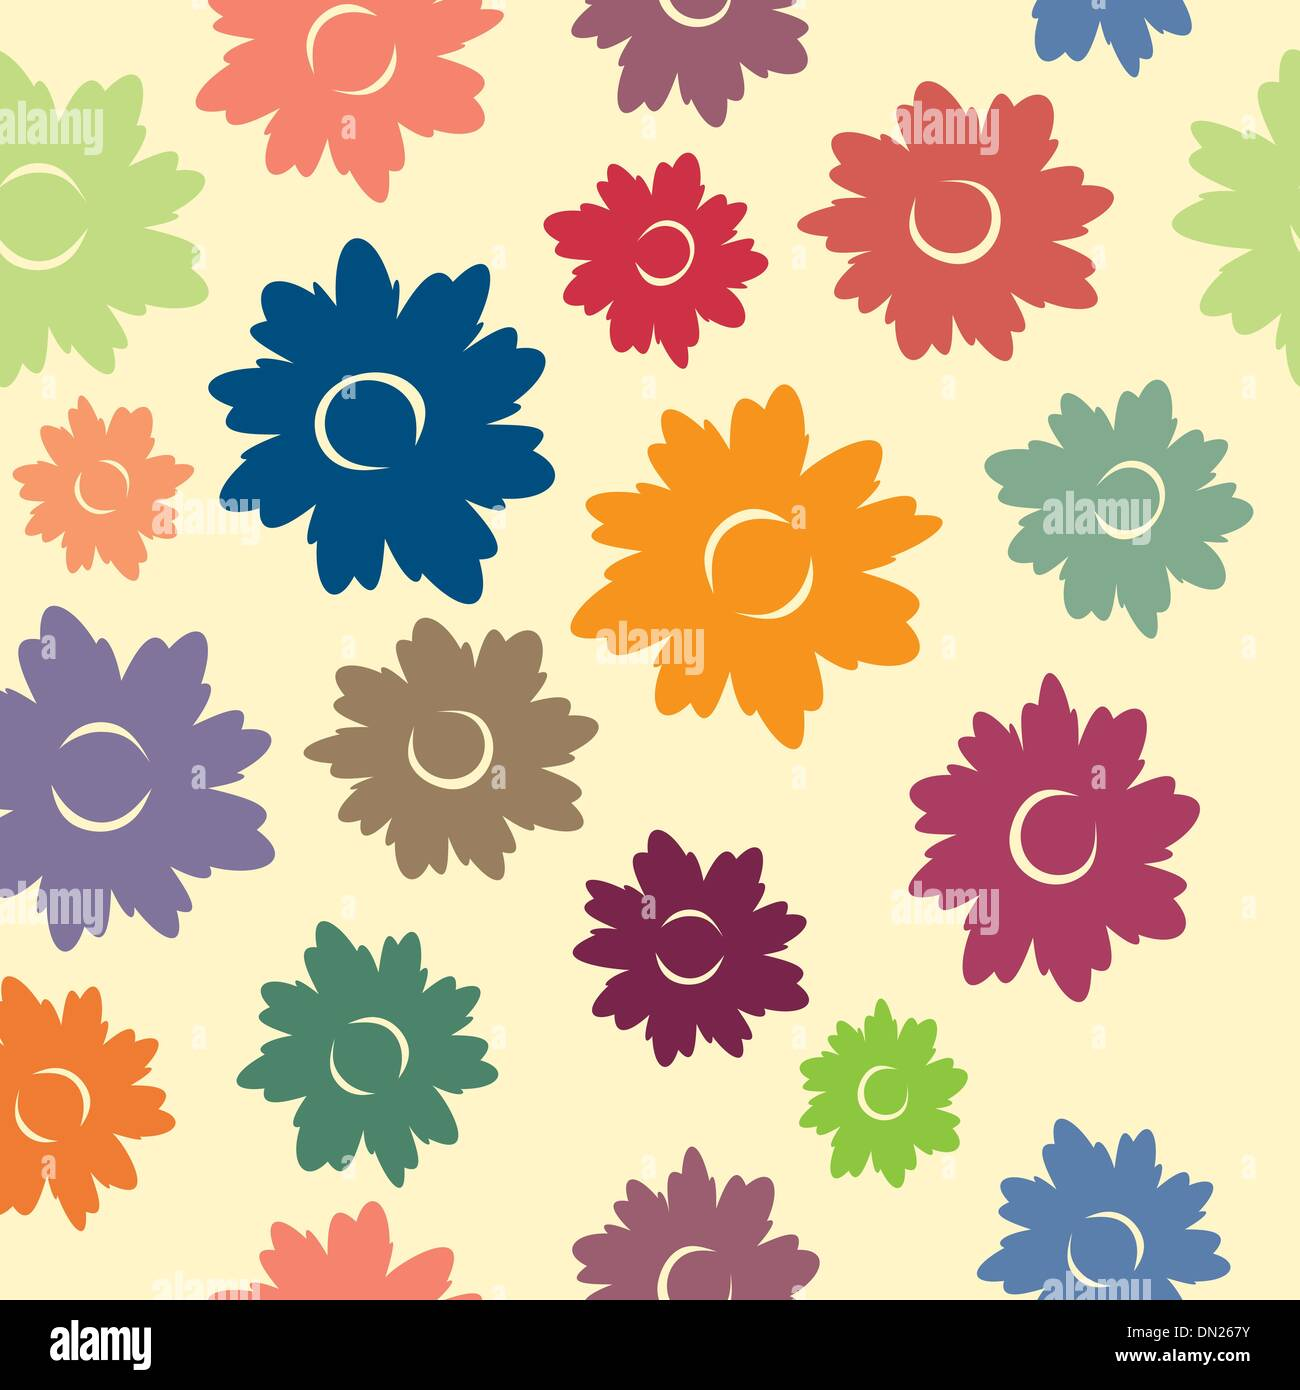 Motif floral Seamless Illustration de Vecteur